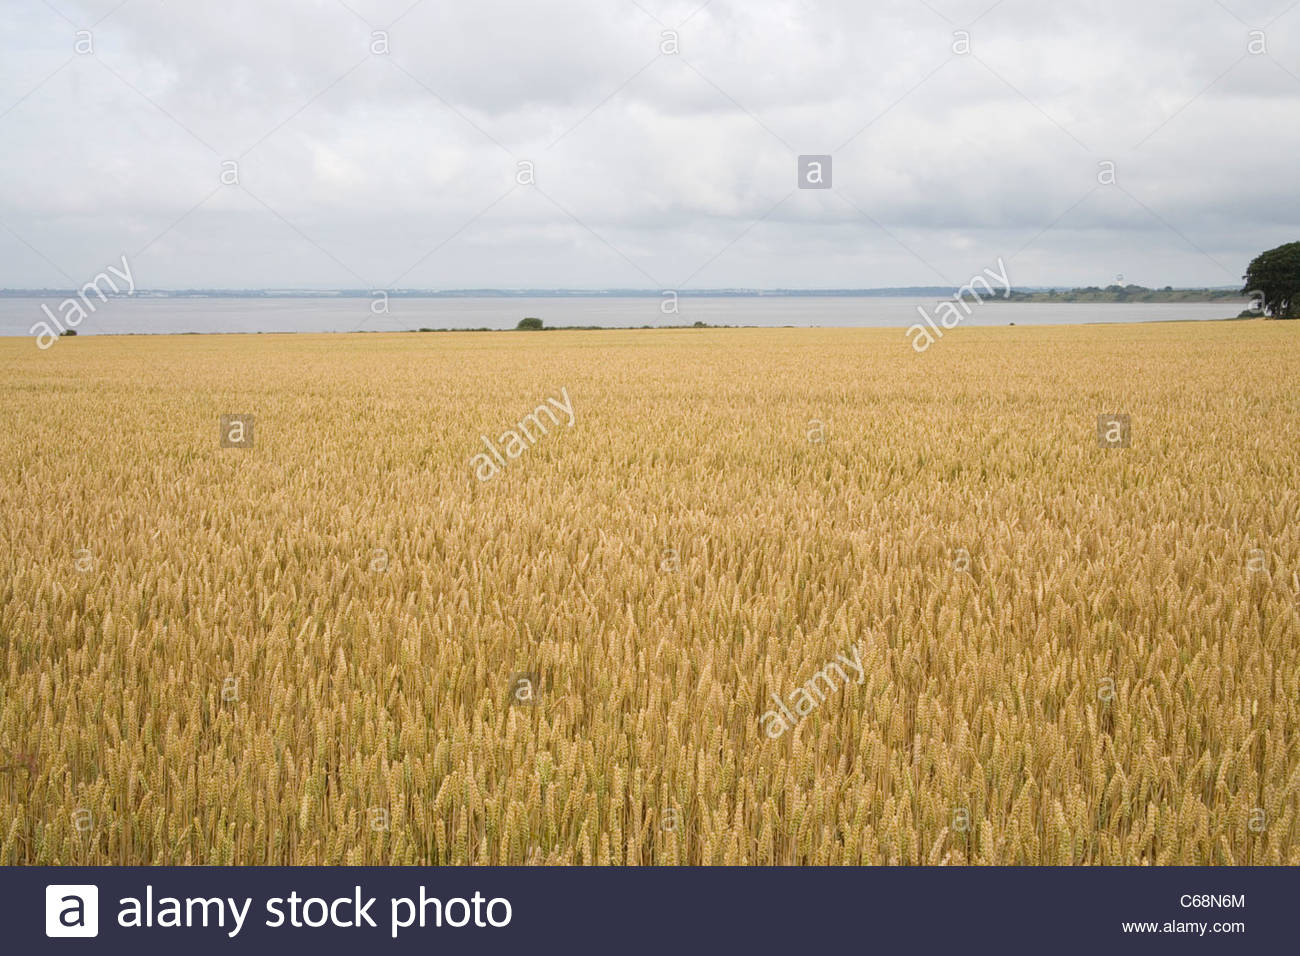 crops growing at hale head and the banks of the mersey river - Stock Image